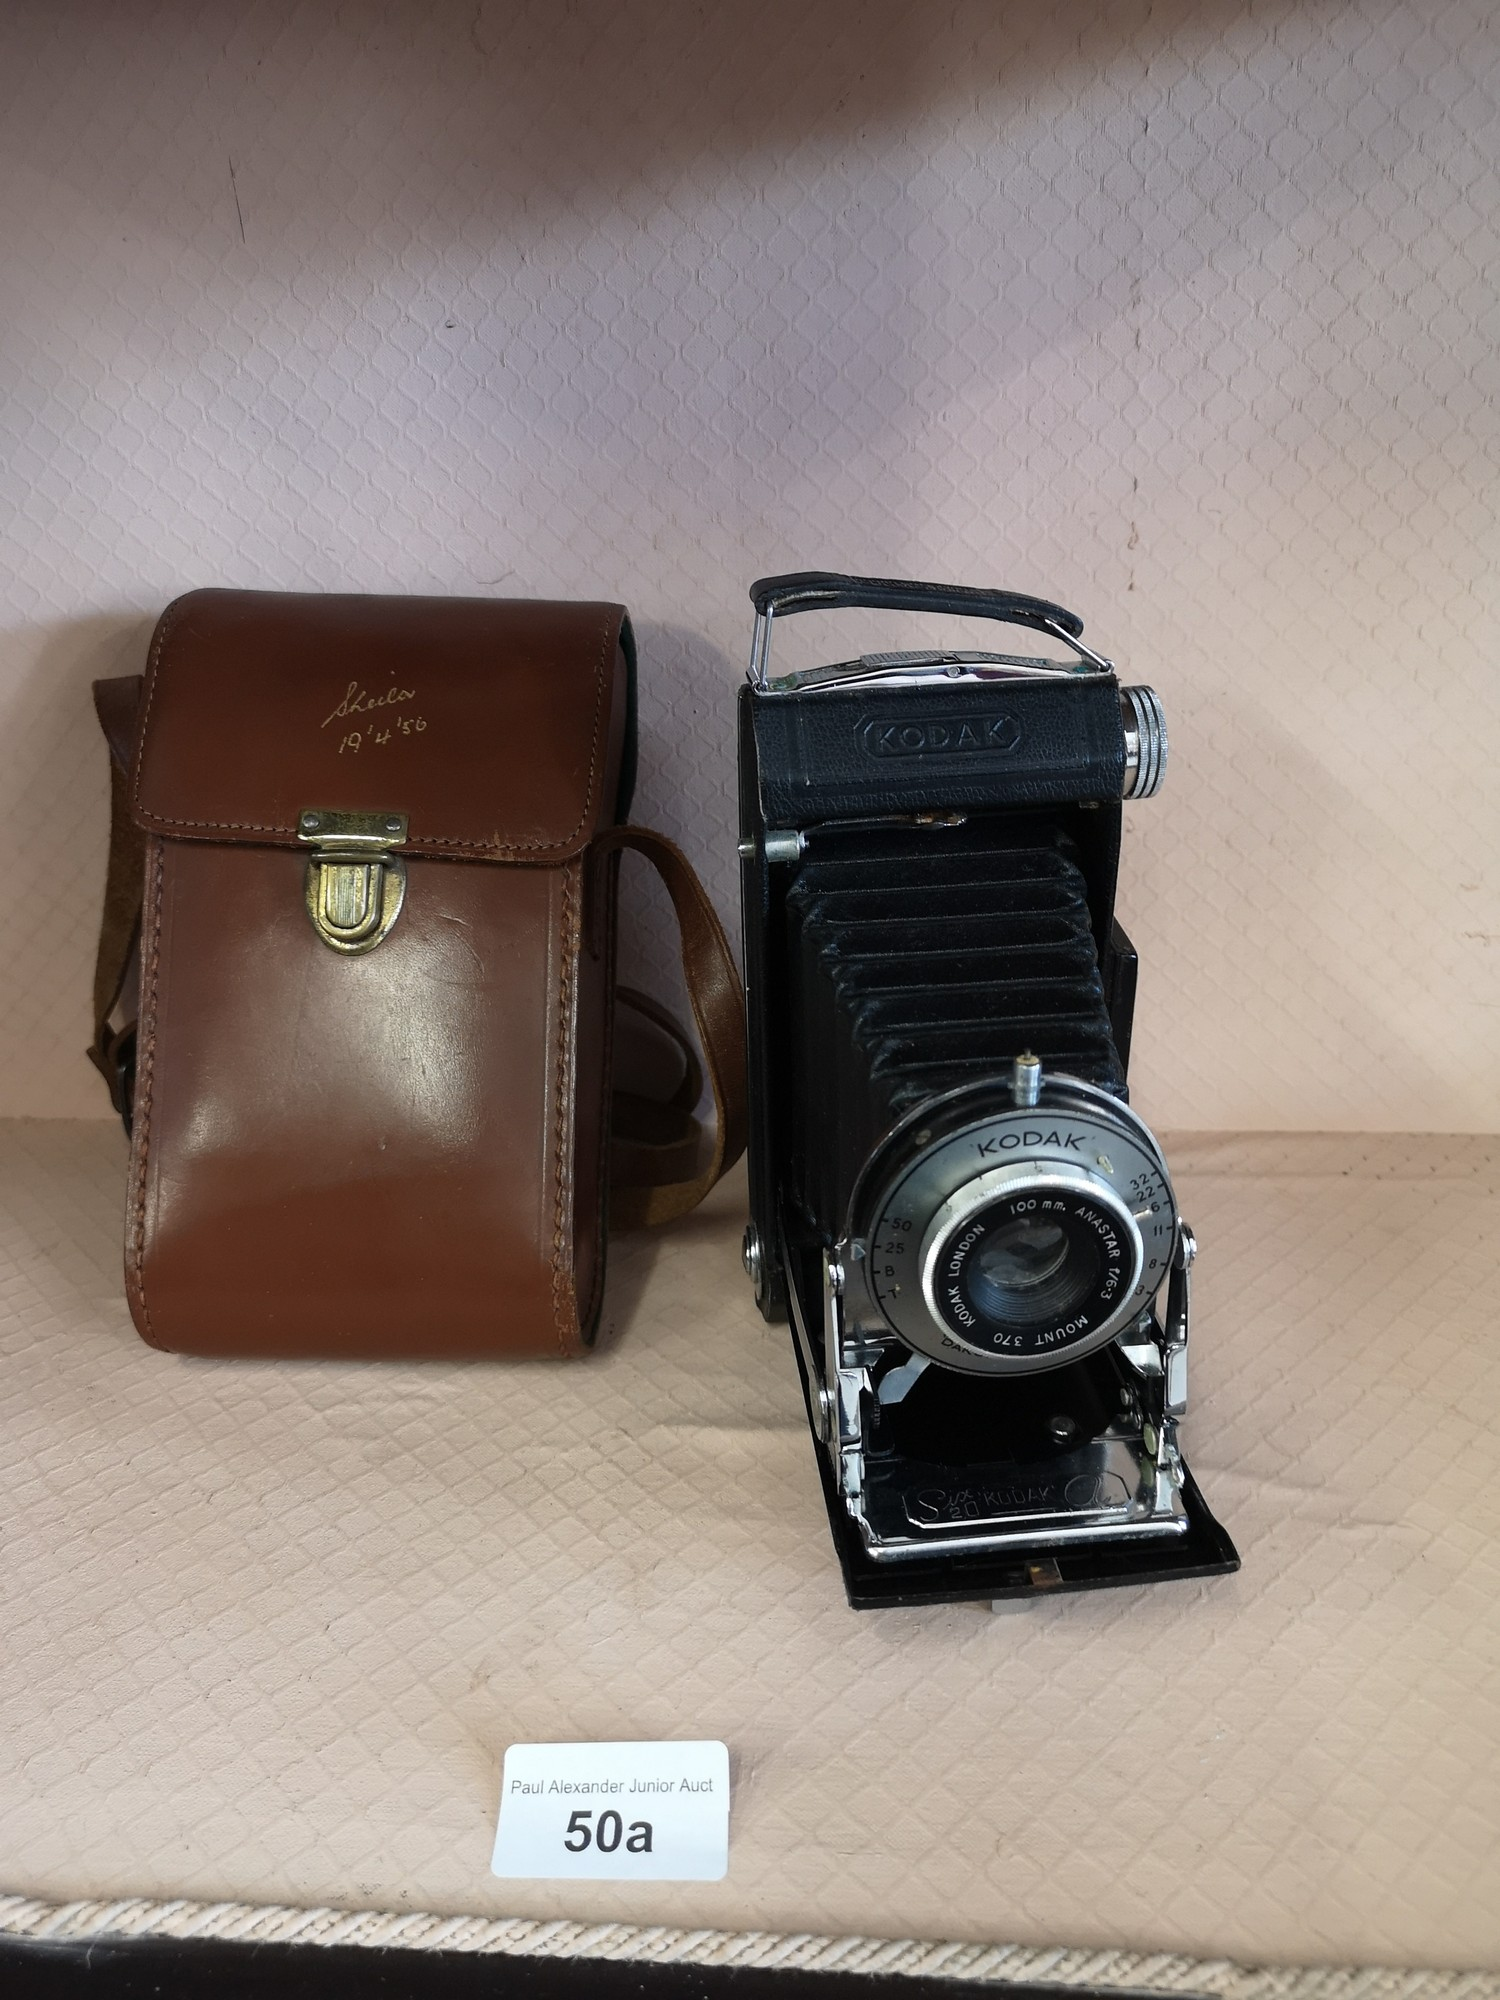 Kodak London bellows camera together with case.